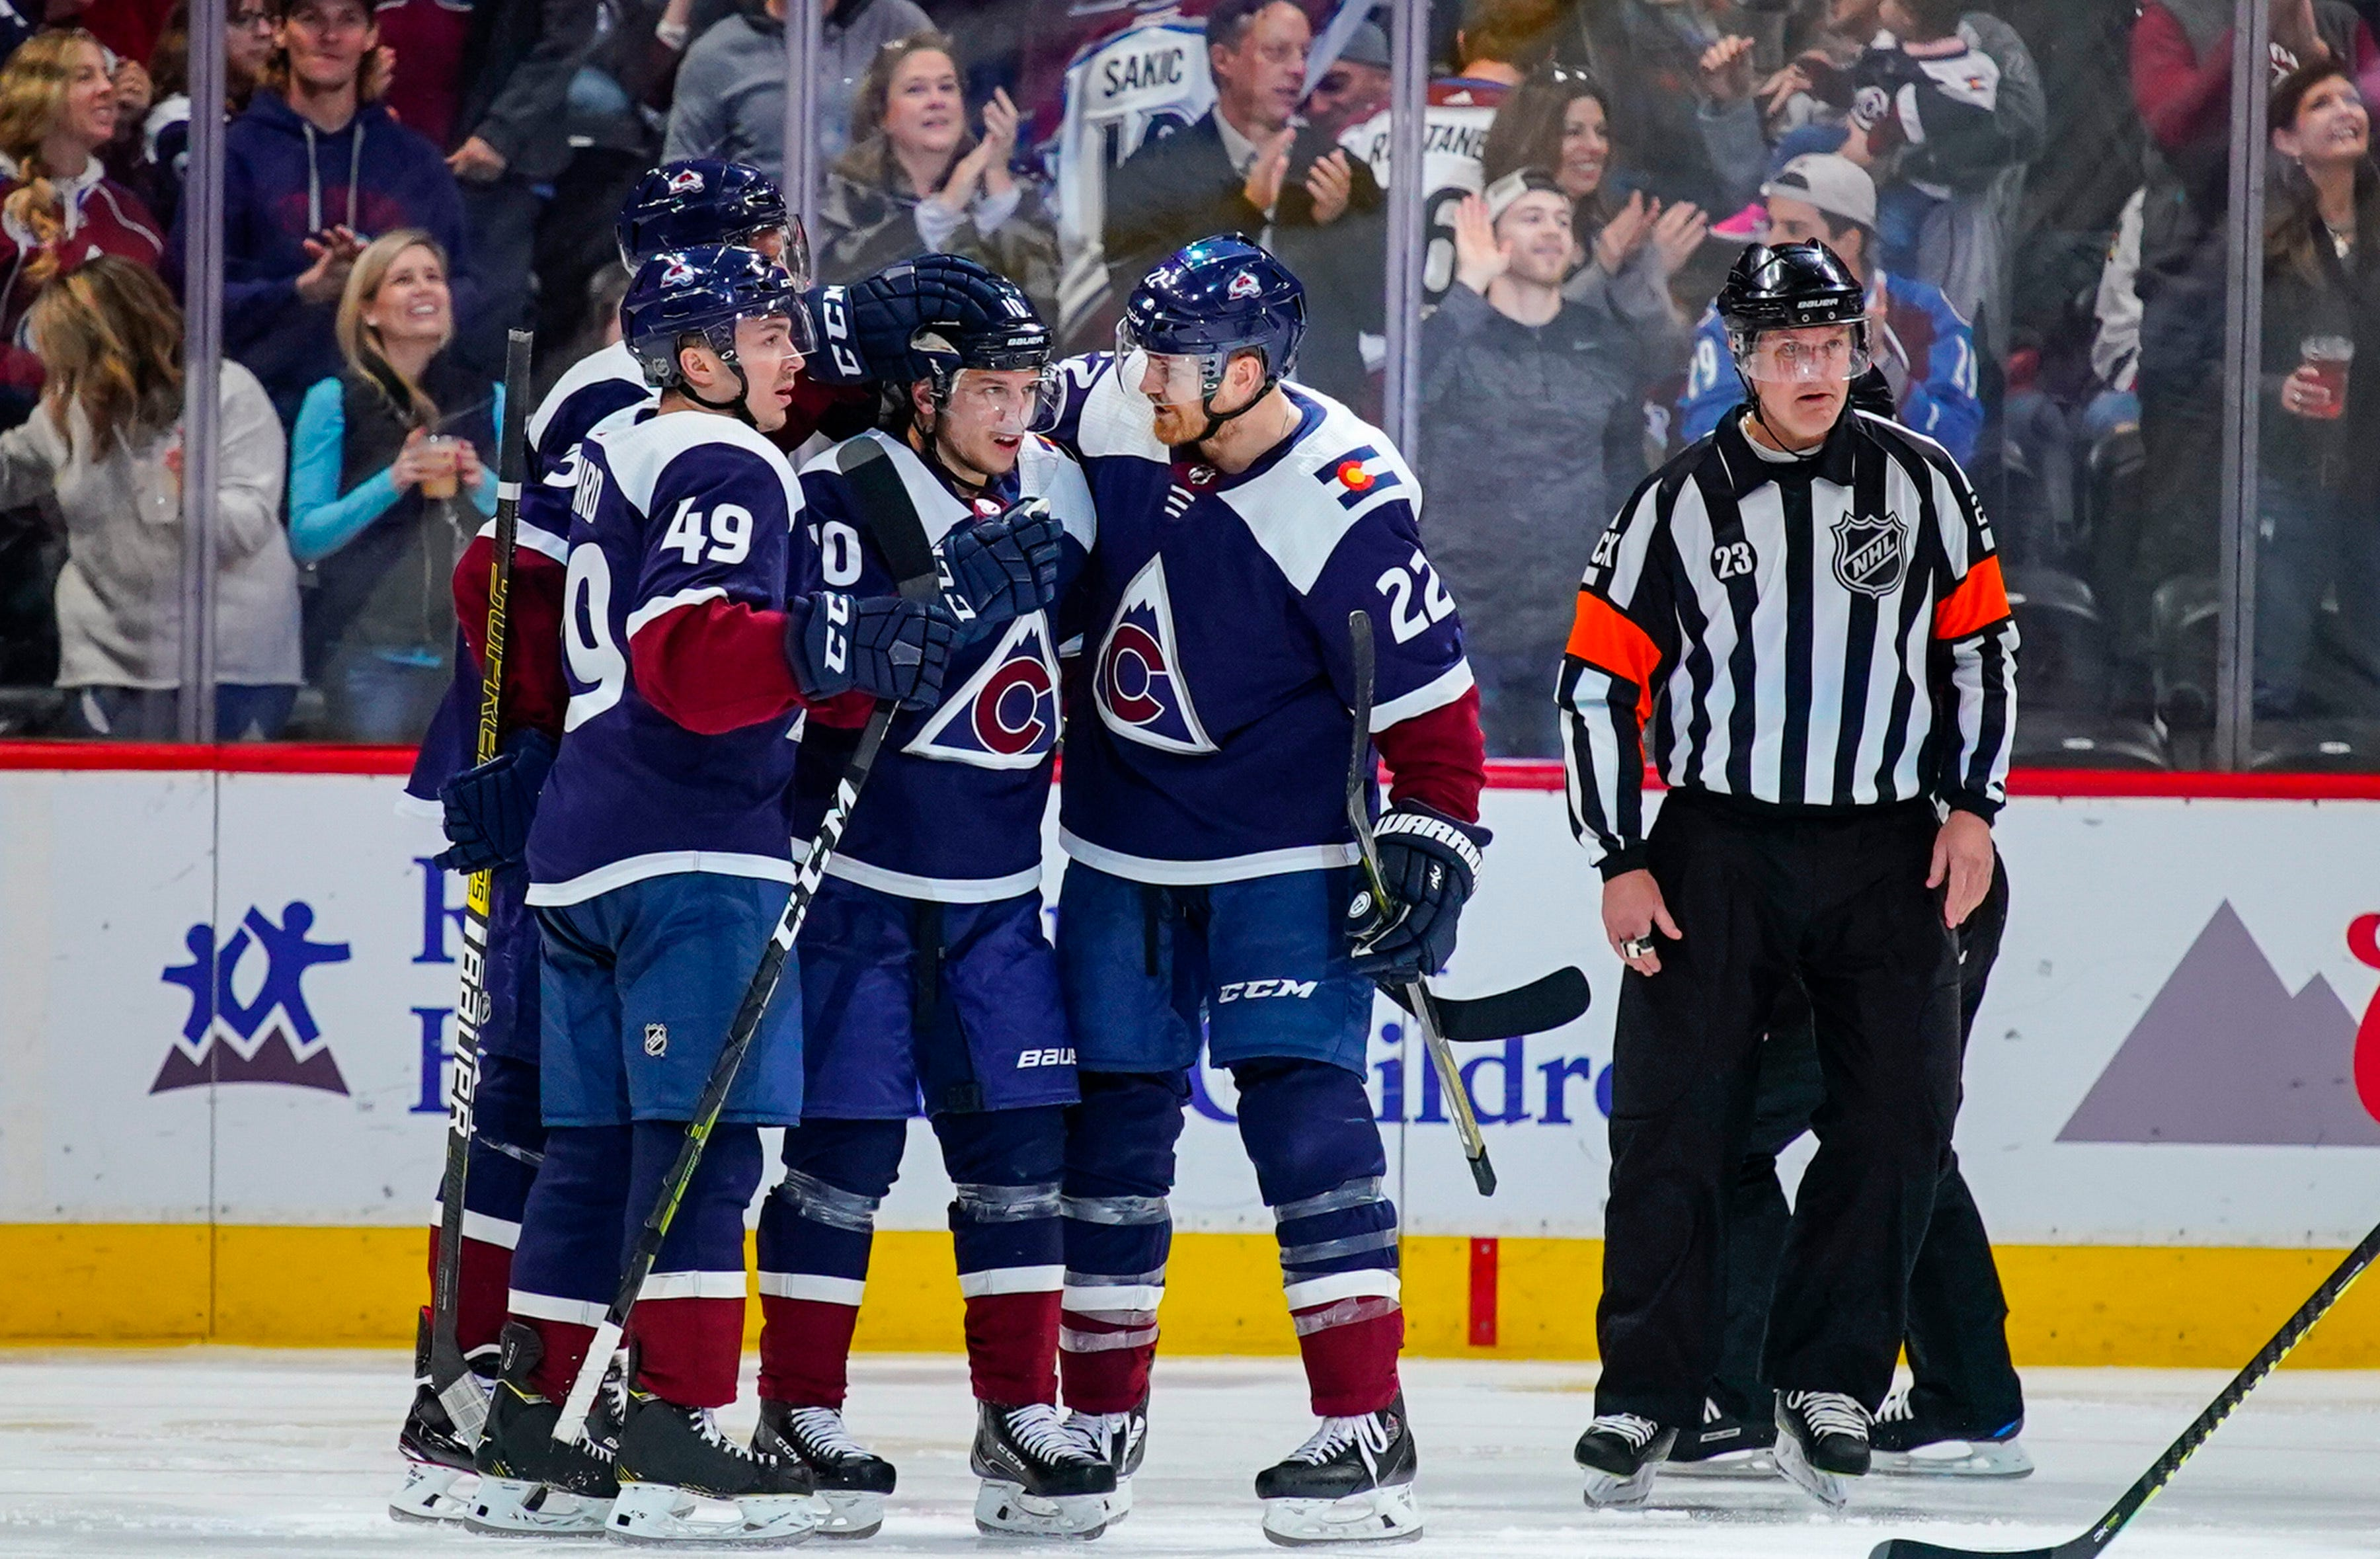 Avalanche beat Blackhawks 4-2 for 4th straight win